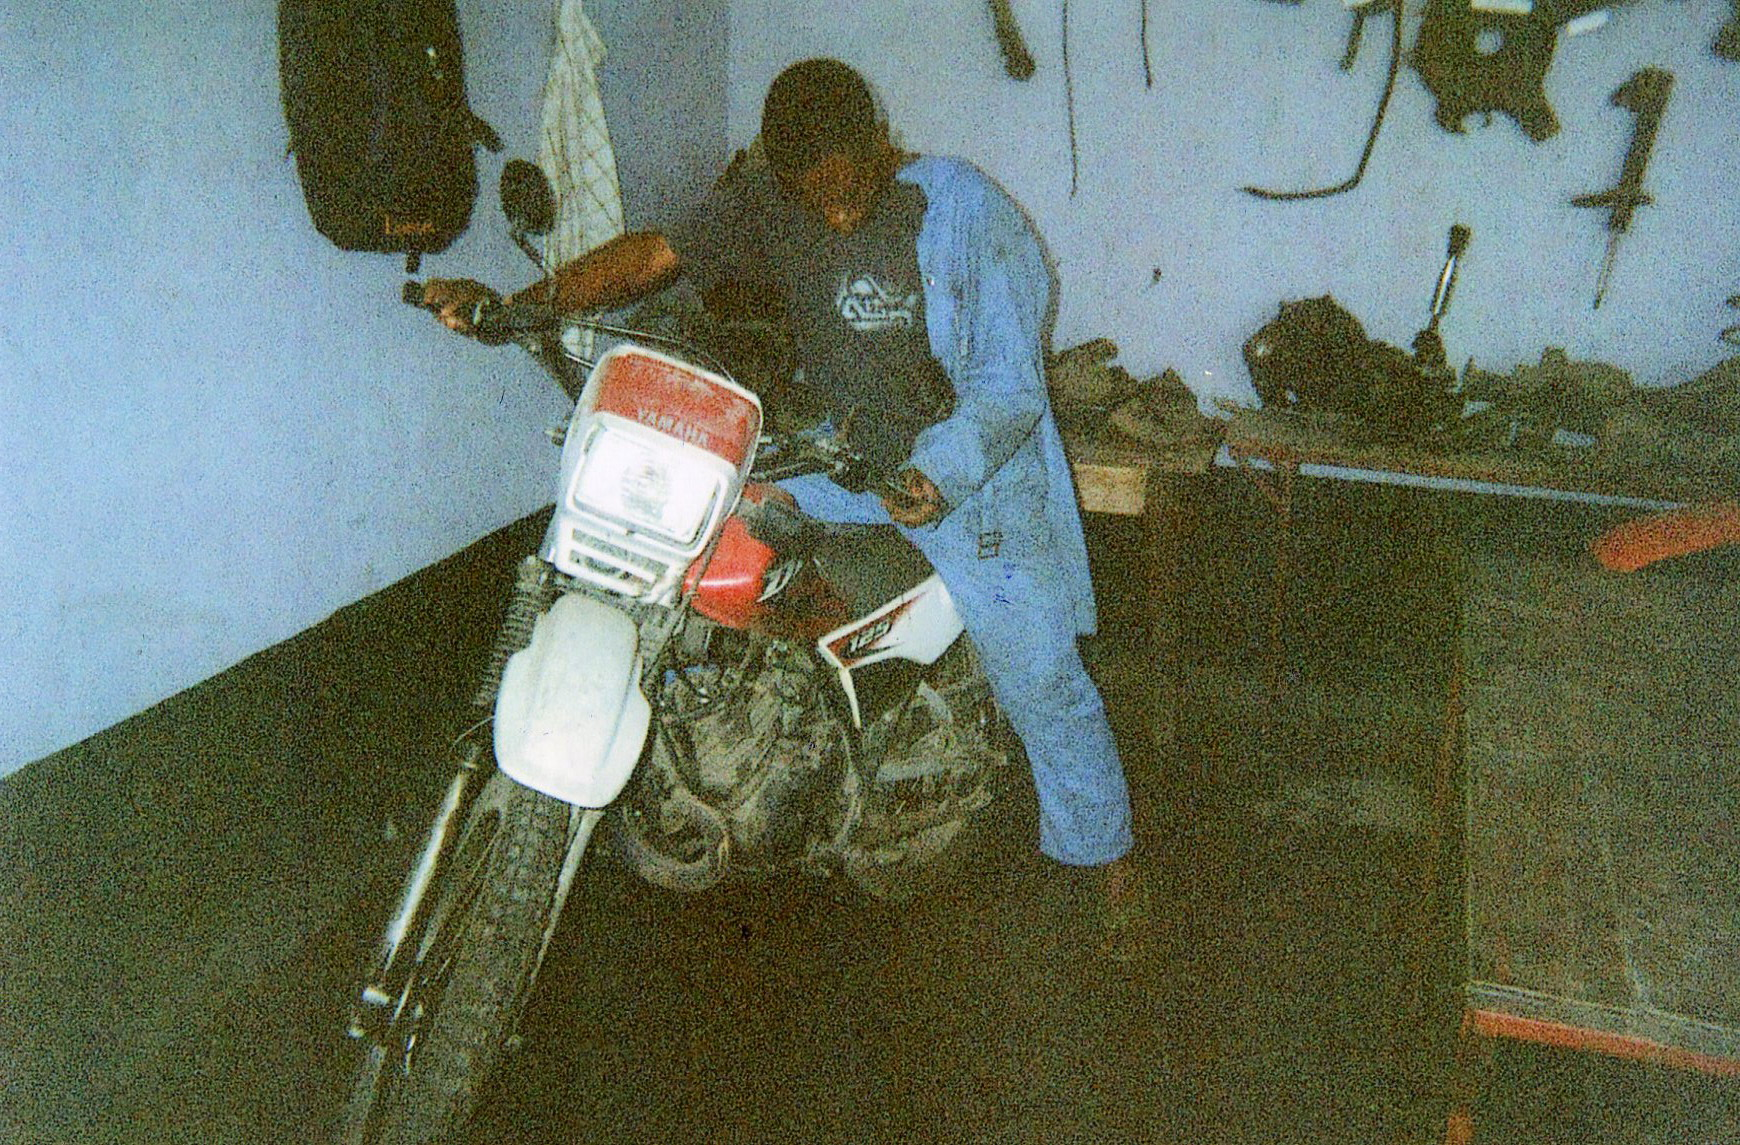 I have repaired a motorbike and trying it to check if it is well fixed.